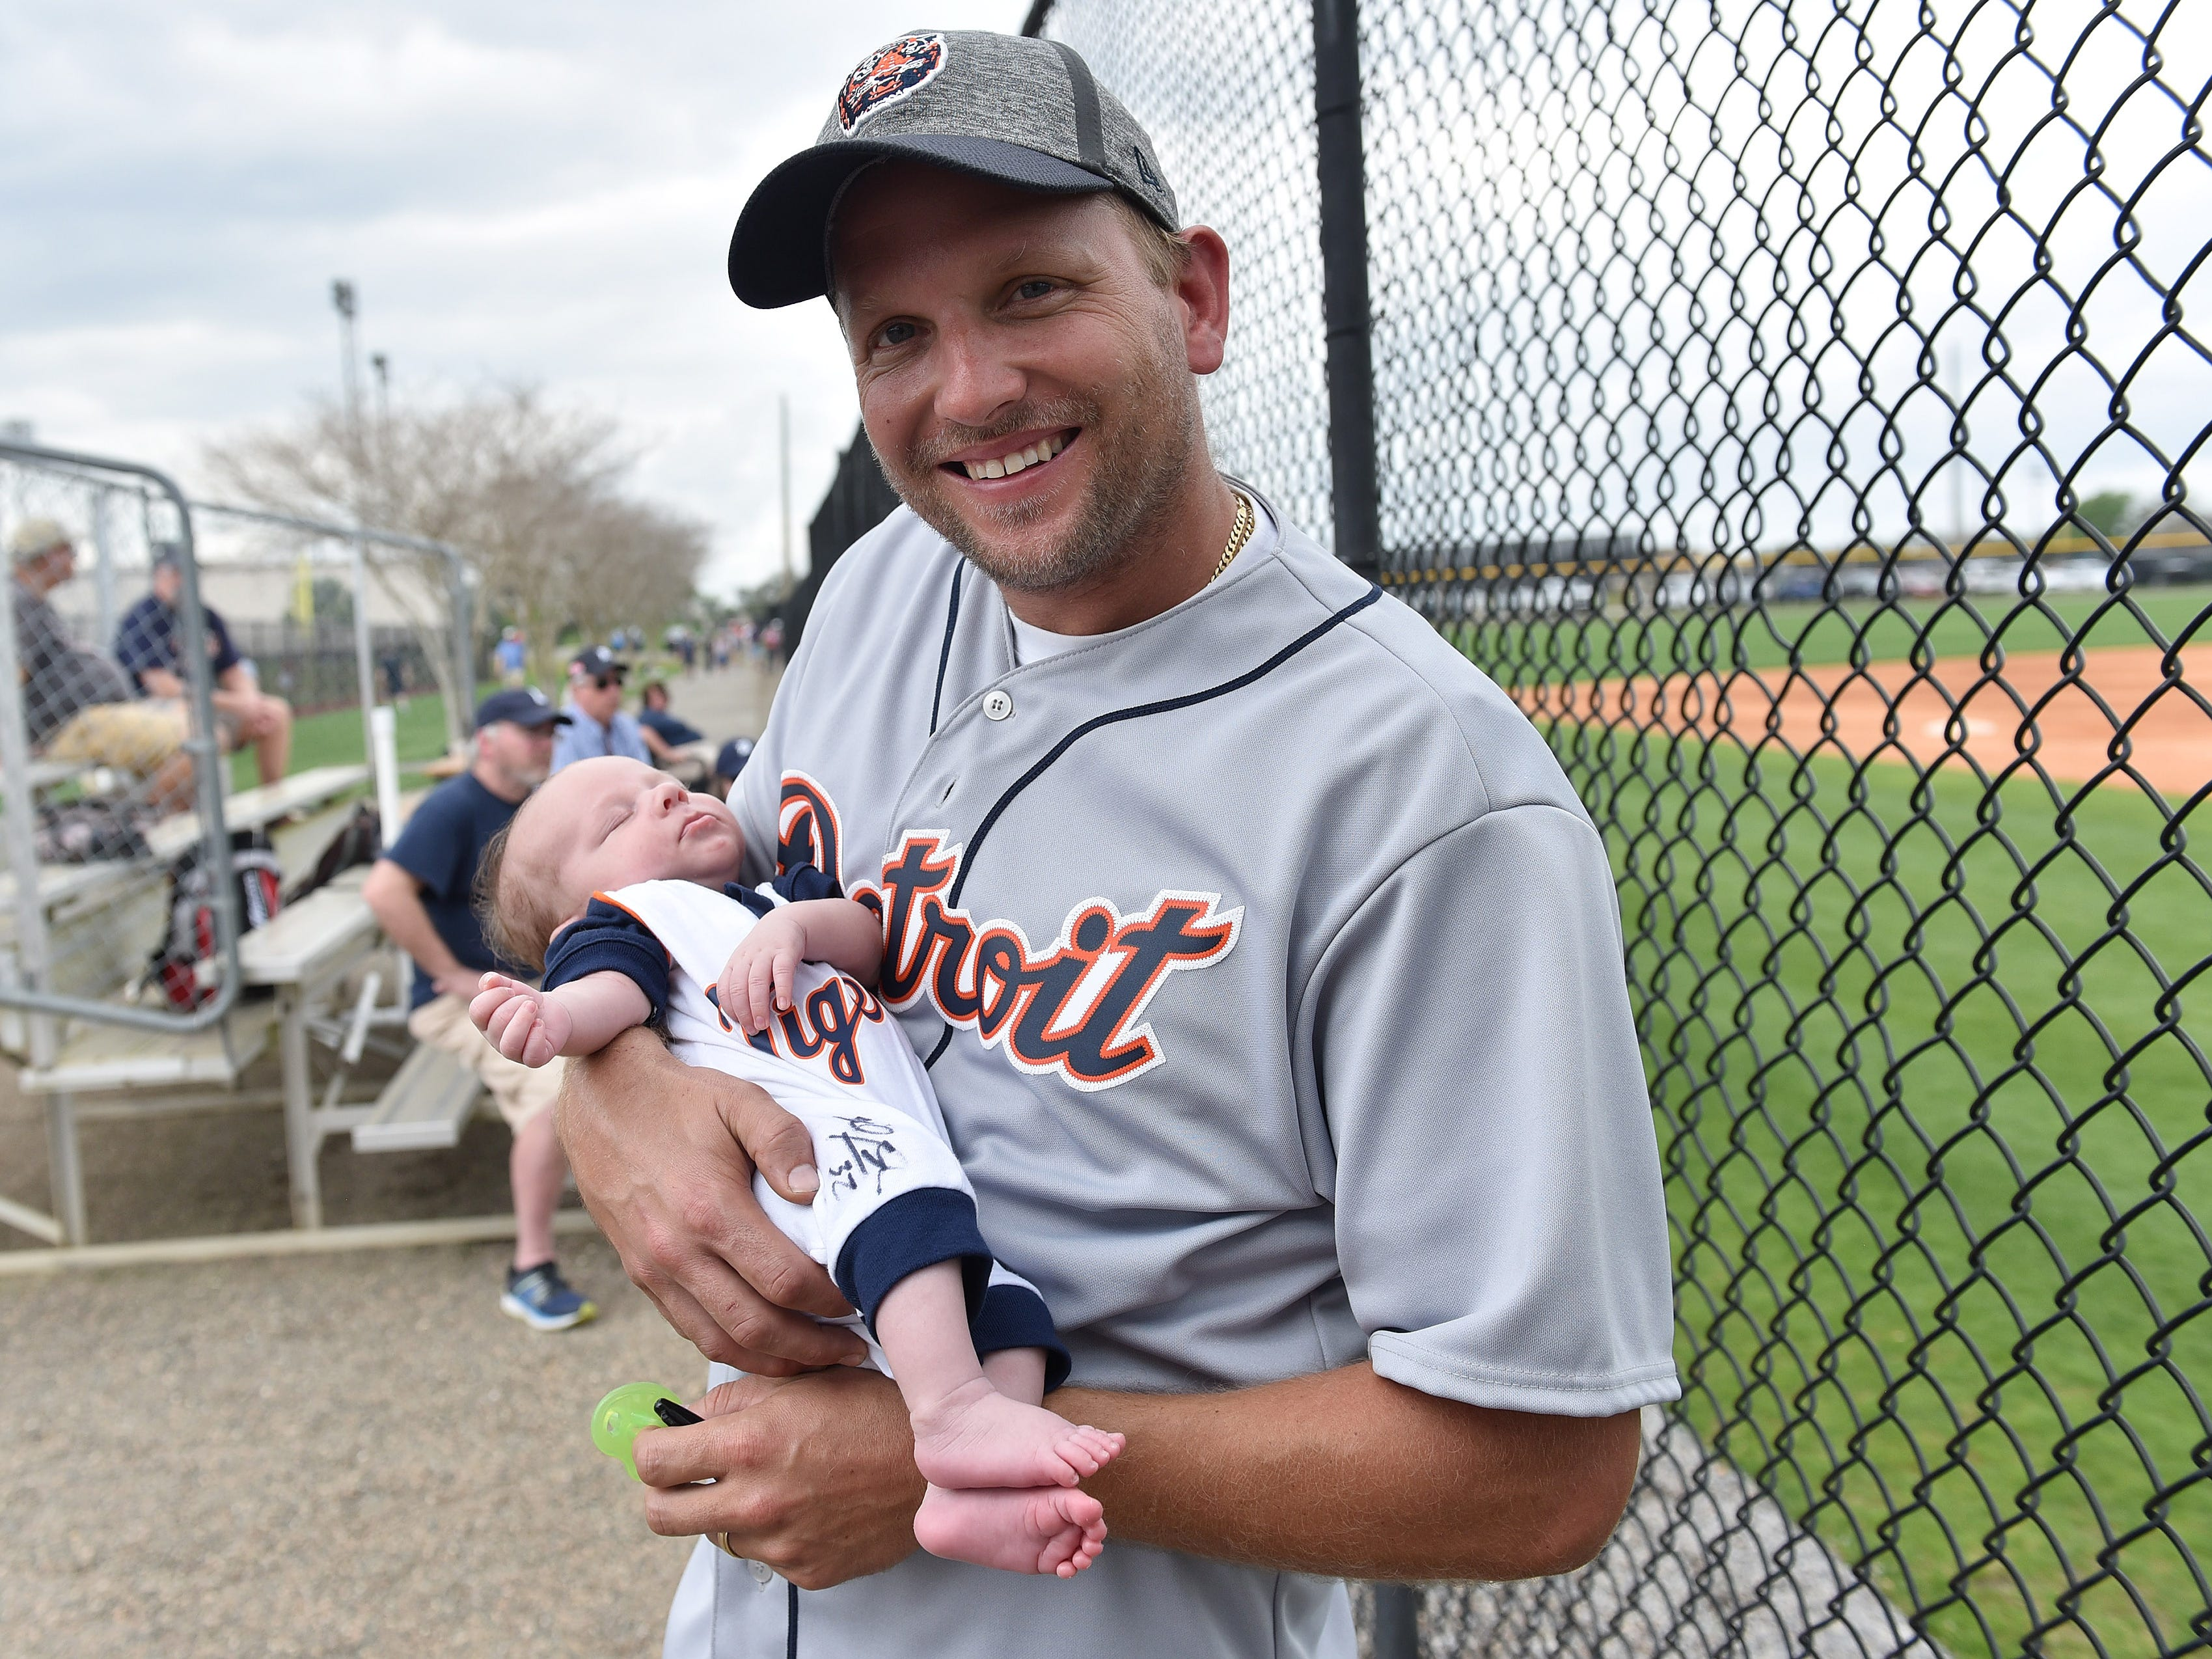 Sean Robb of Valrico, Fla. holds his son, Carter Terry Robb, who turns one month old tomorrow, at the first full squad workout. Carter's onesie was signed by Michael Fulmer. The family members are Tigers fans because in part mother's family is from Shelby Township.